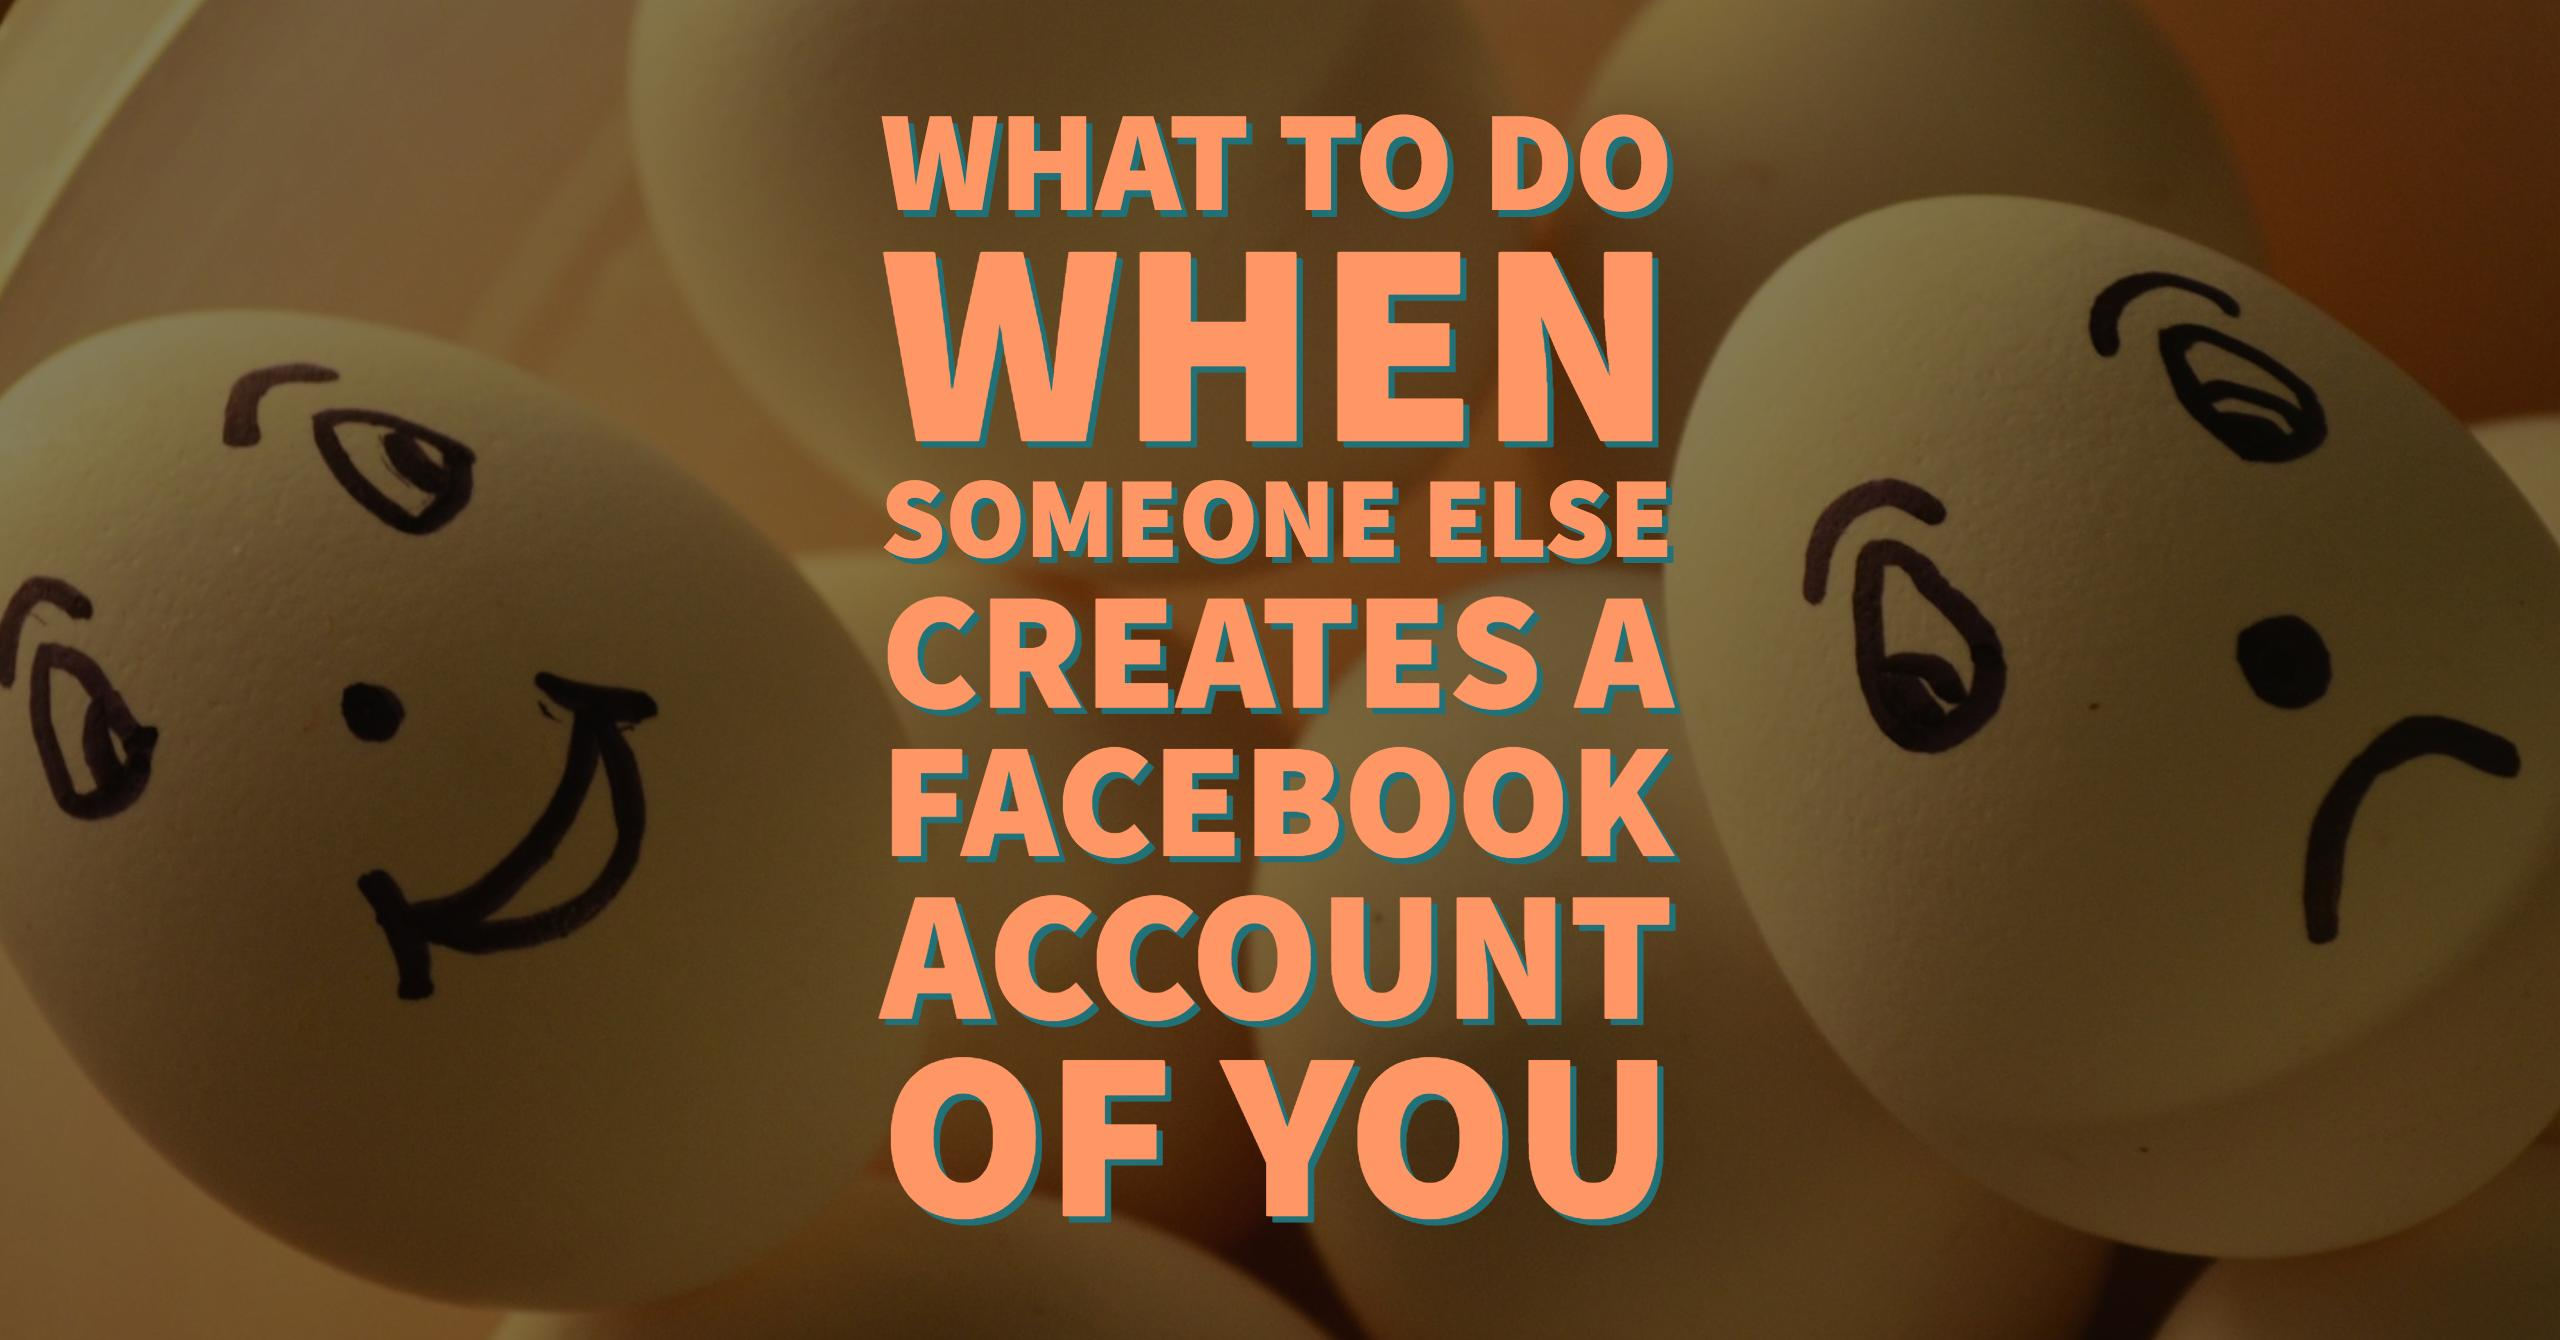 What To Do When Someone Else Creates a Facebook Account of YOU